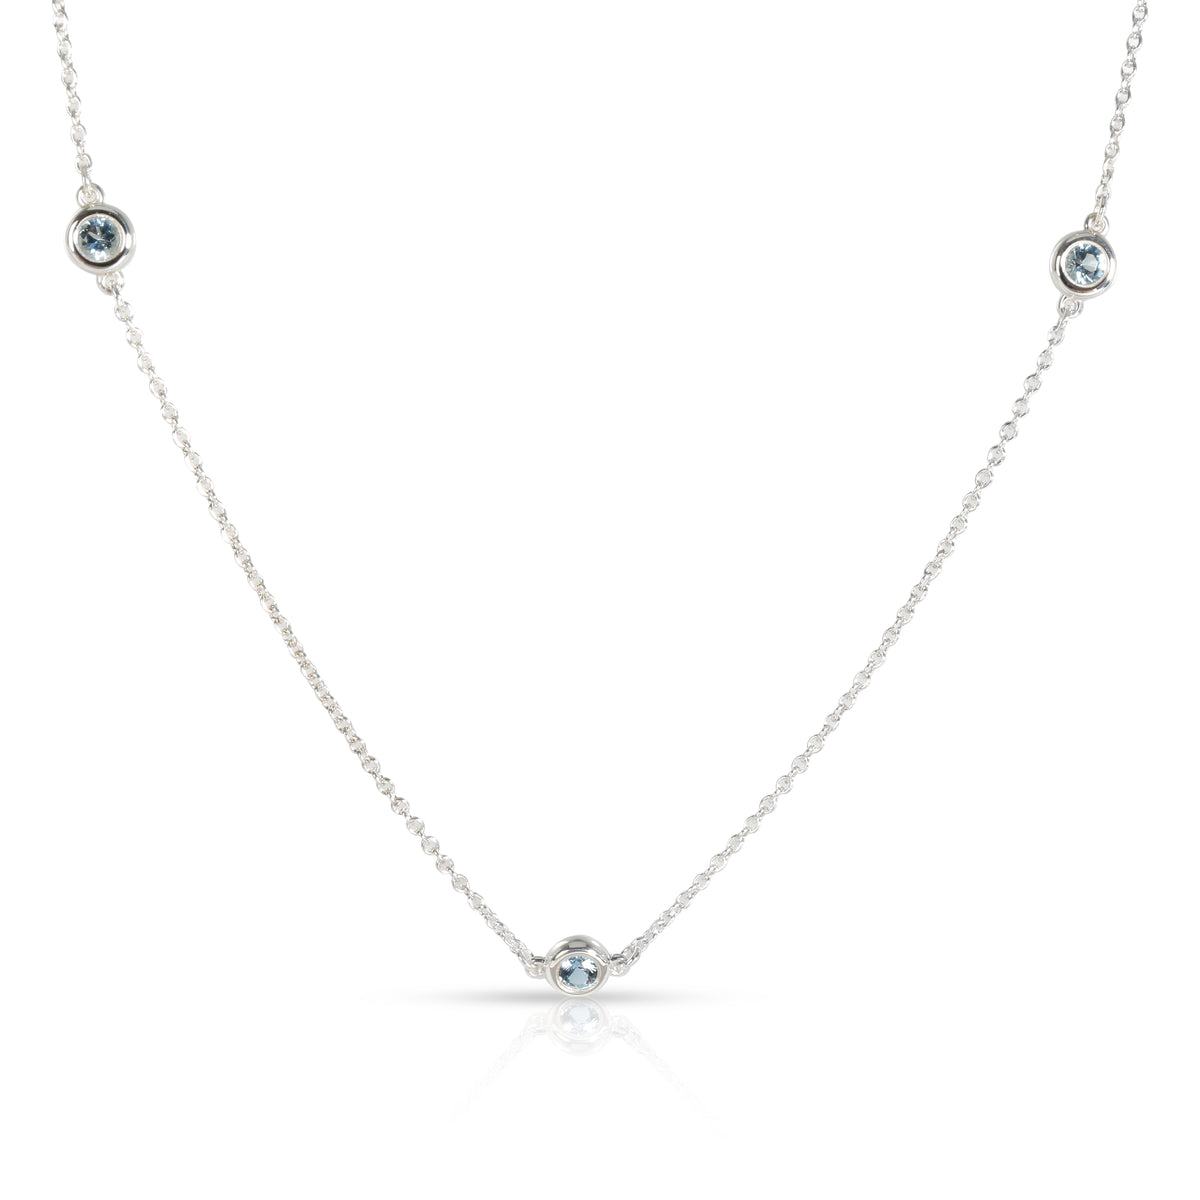 Tiffany Elsa Peretti Color by the Yard Aquamarine Necklace in Sterling Silver